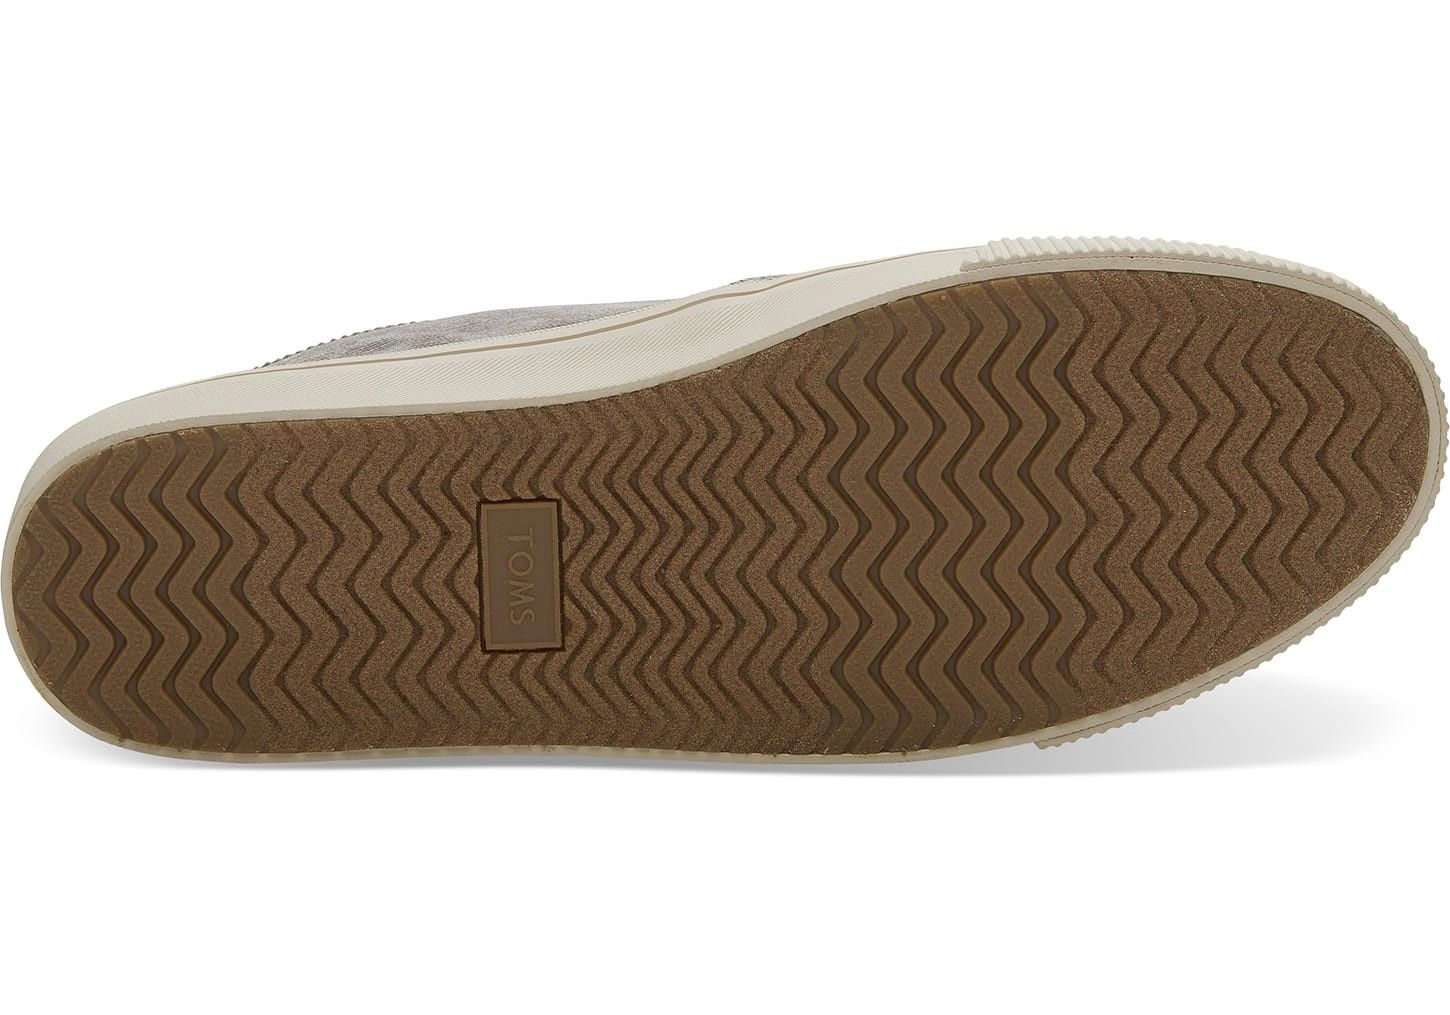 bac69a4788 TOMS Cement Micro Corduroy Men s Carlo Sneakers Shoes by TOMS in ...